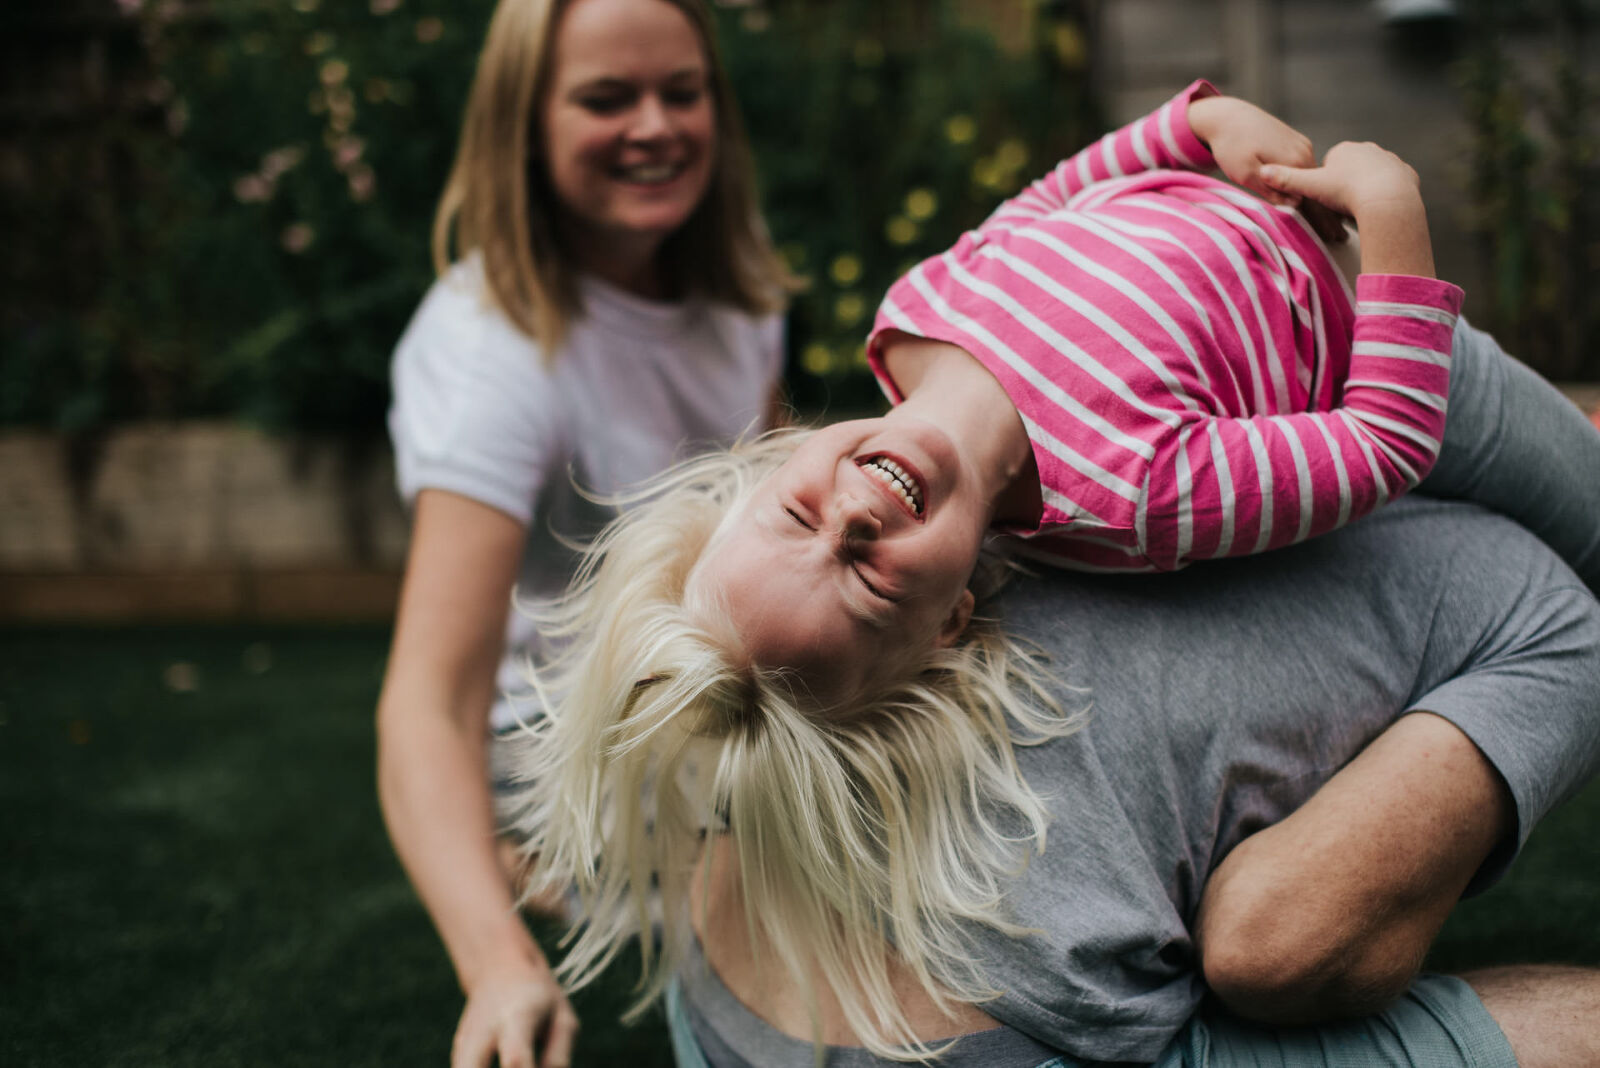 A natural professional family photoshoot with Rutland photographer